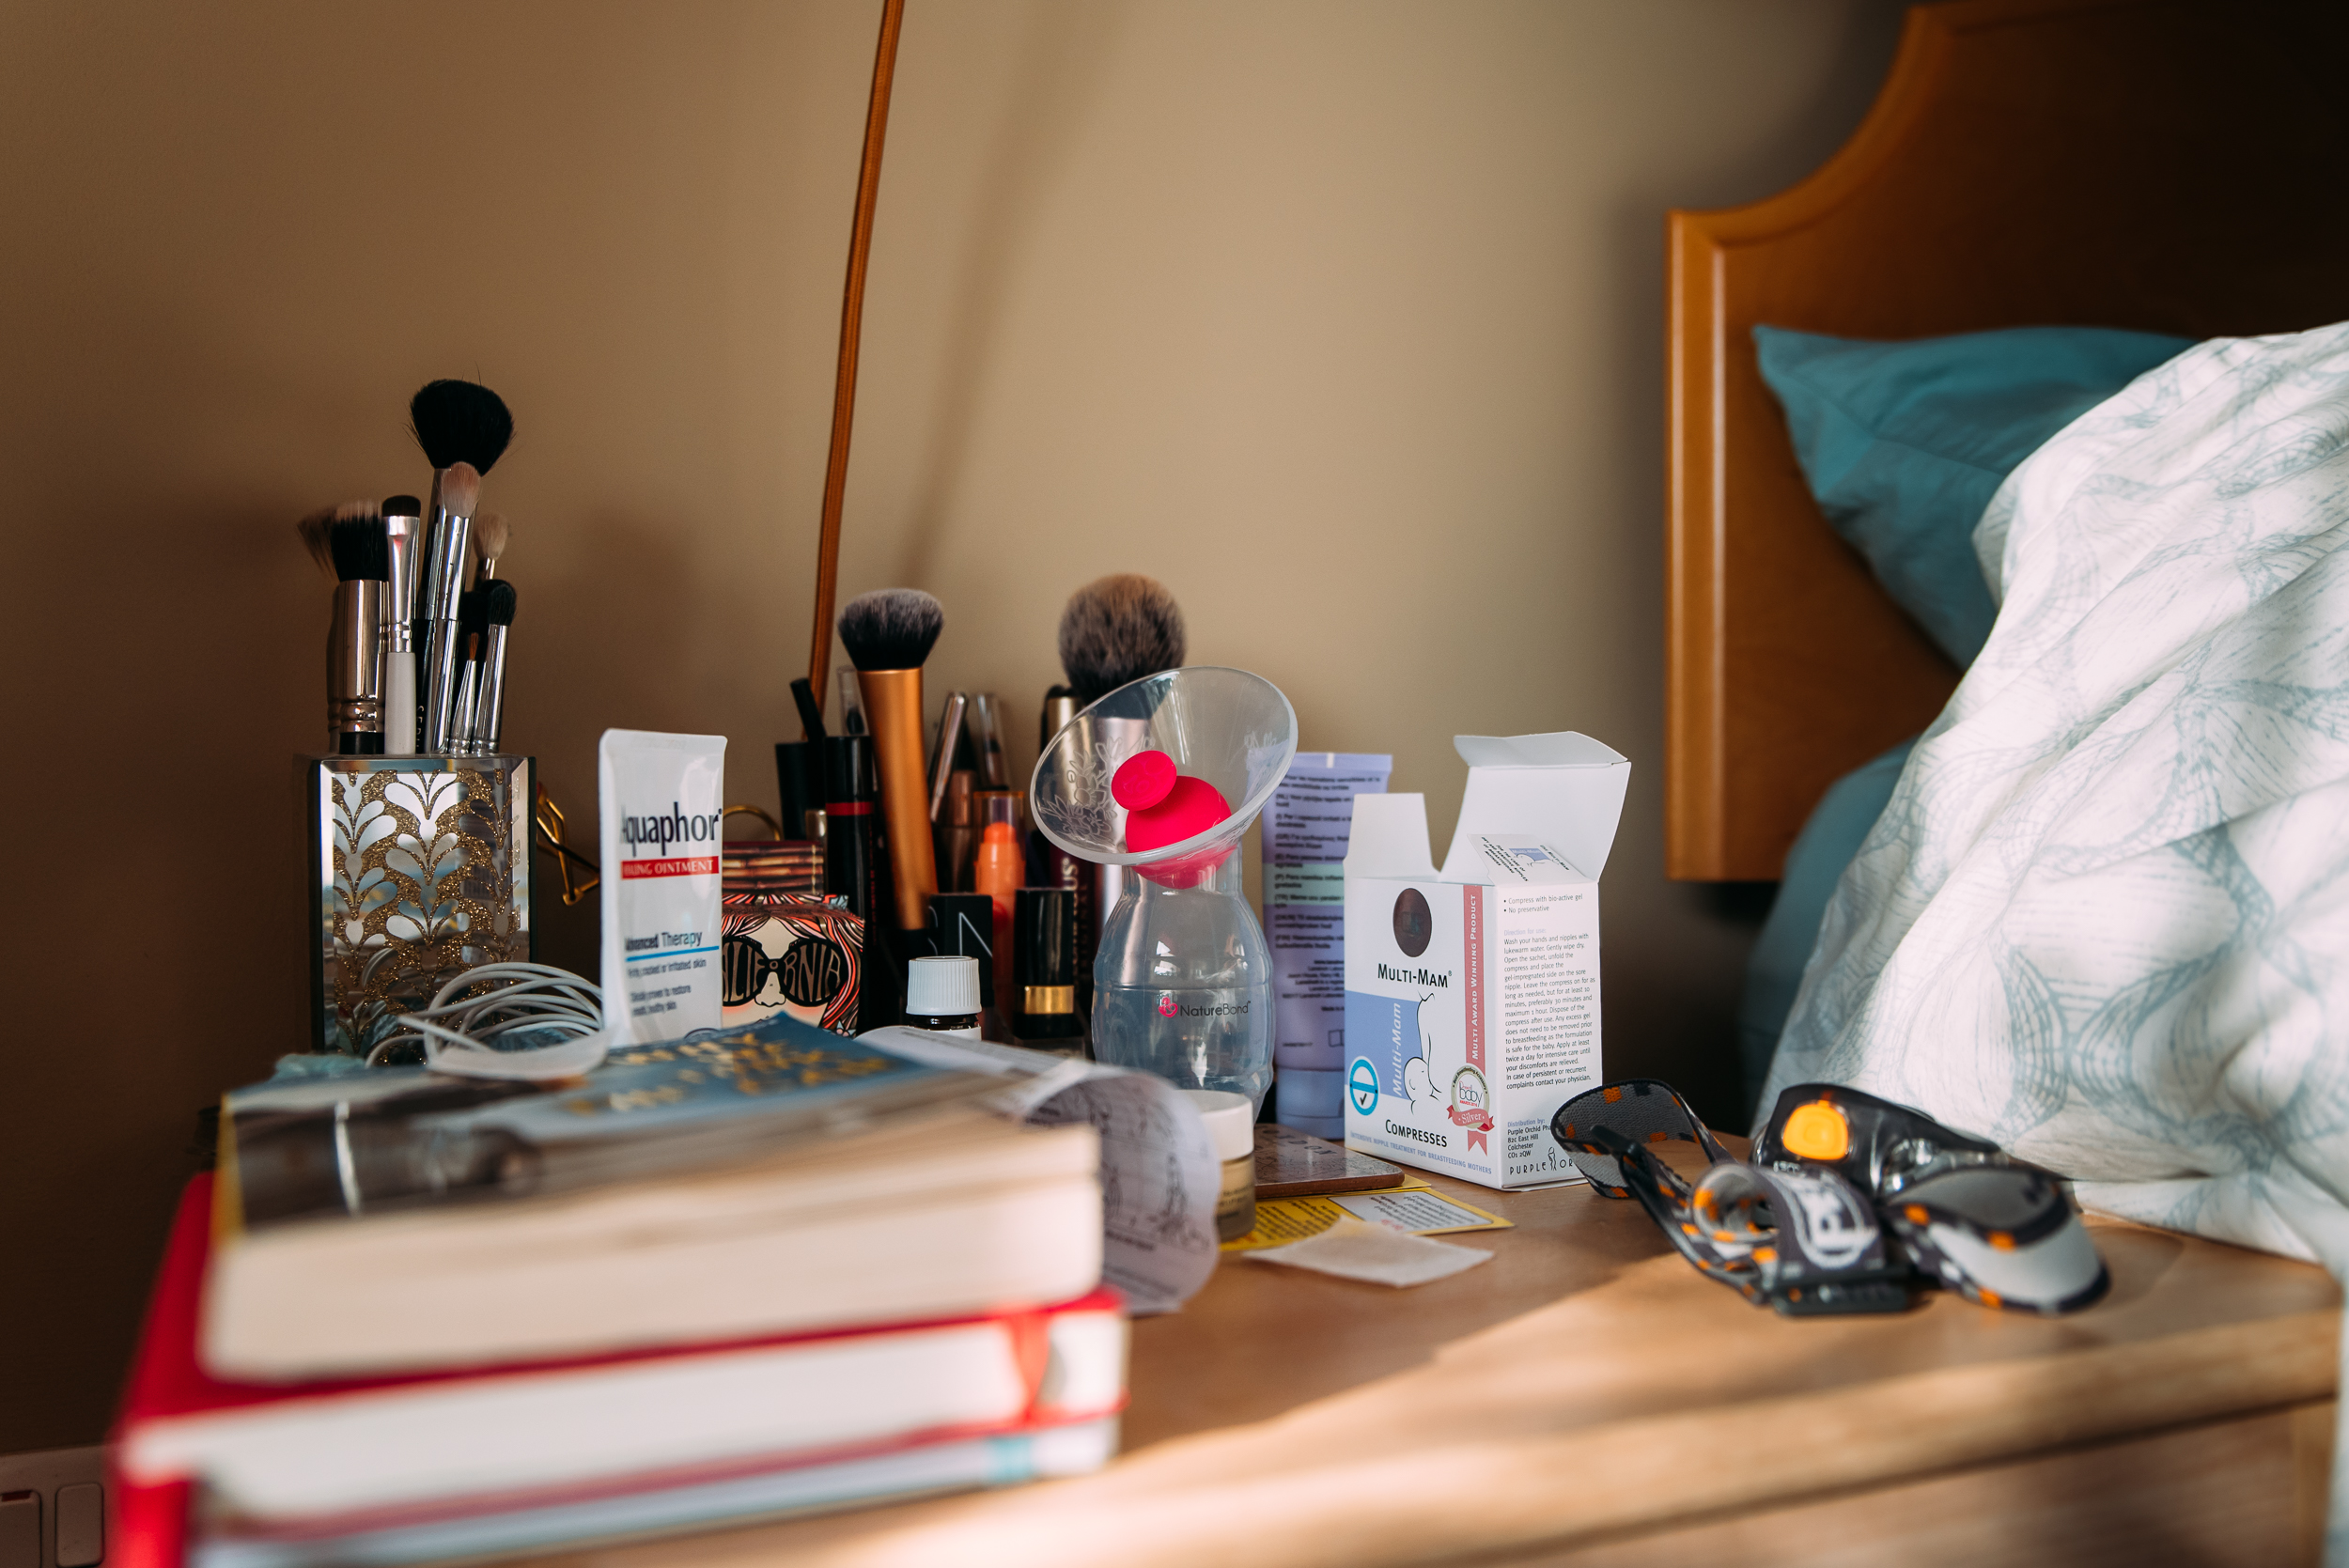 Make up brushes and breast milk container lies by the side of th